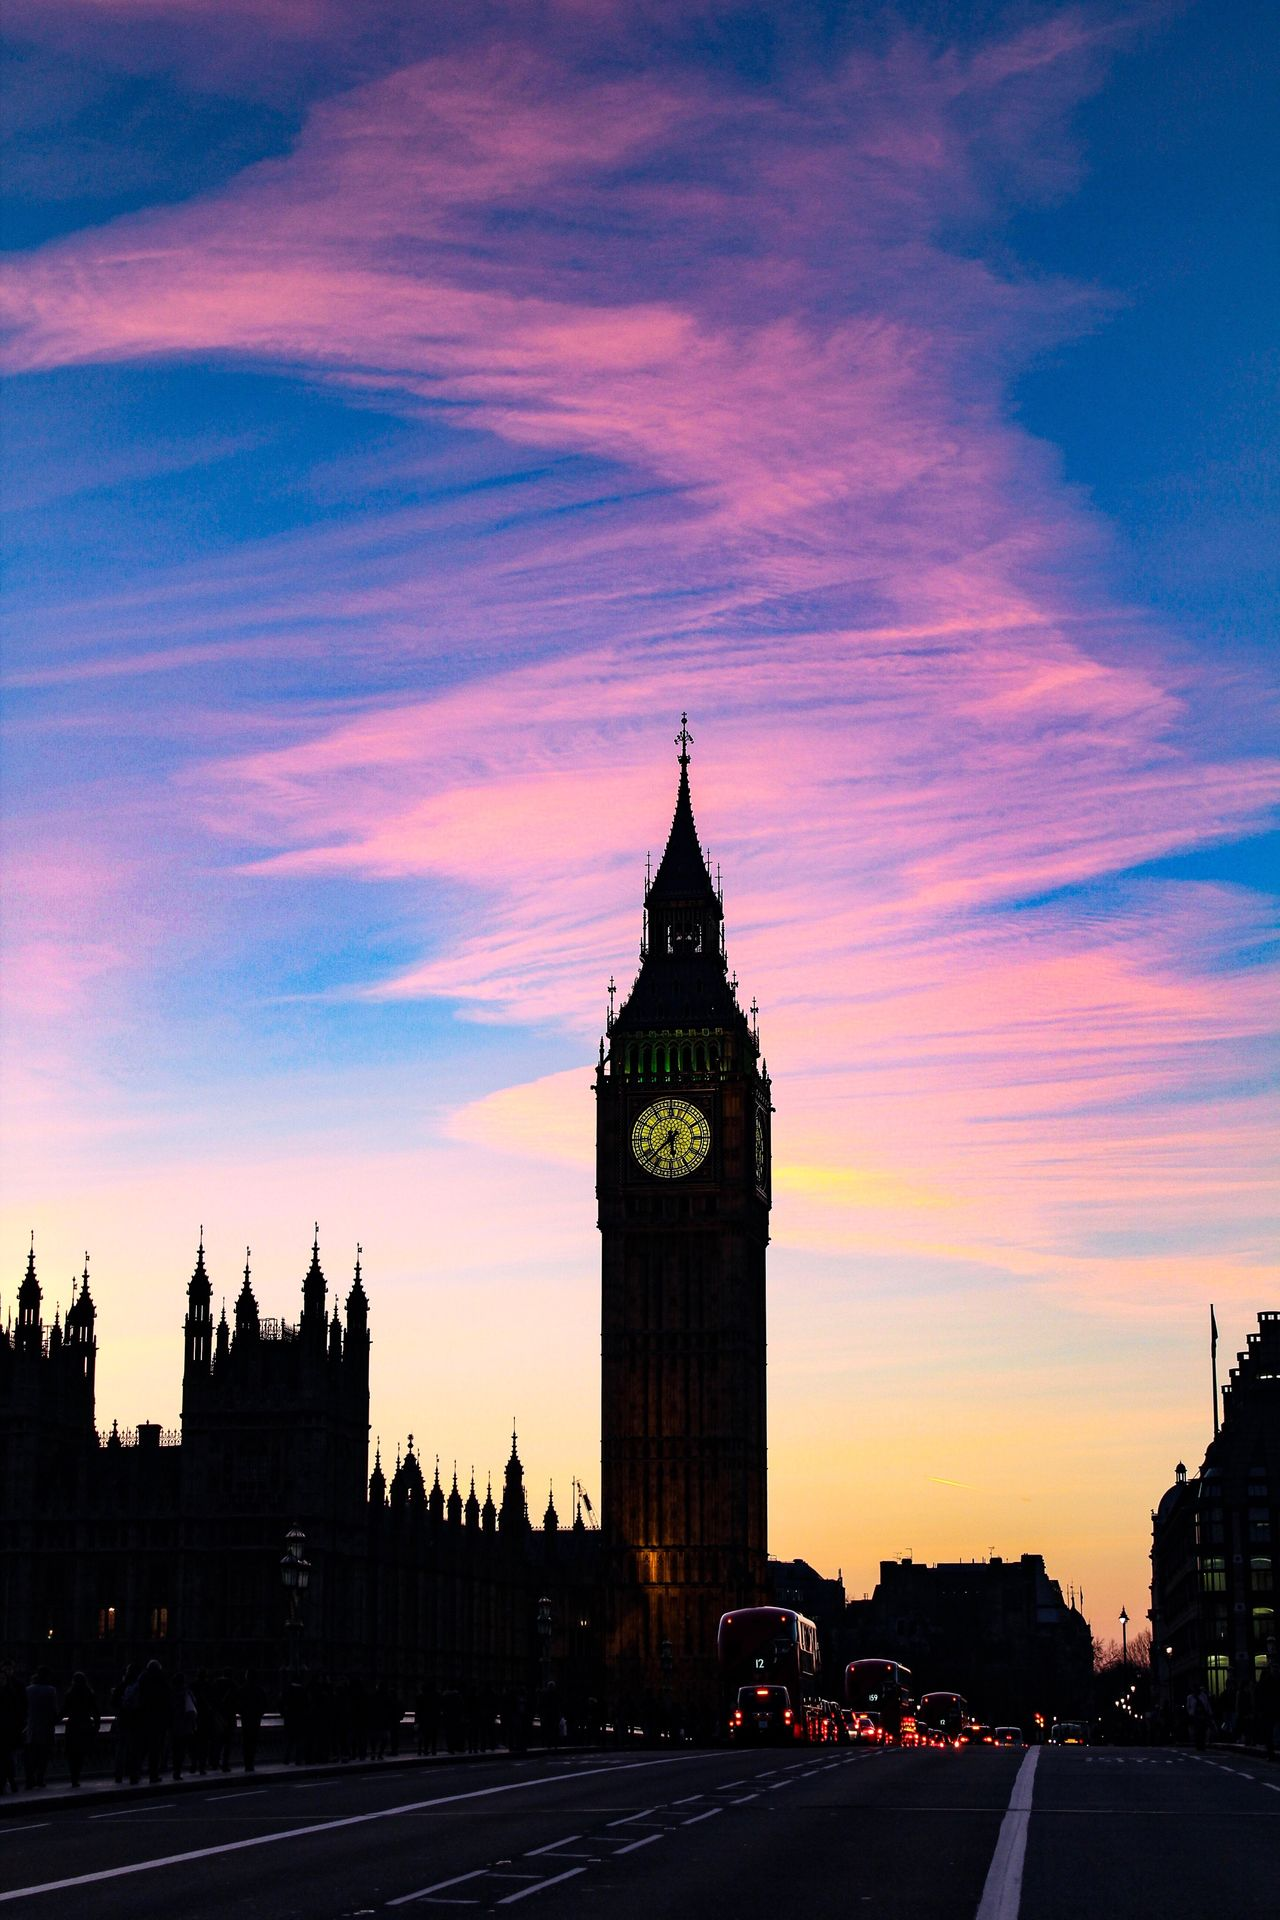 Somebody was painting the sky tonight 🔥 Clock Tower City Travel Destinations Sunset Architecture Clock Dusk Sky Tower Cityscape Cloud - Sky Silhouette Building Exterior City Life Outdoors History Time Tree No People London Big Ben Nature Sunlight